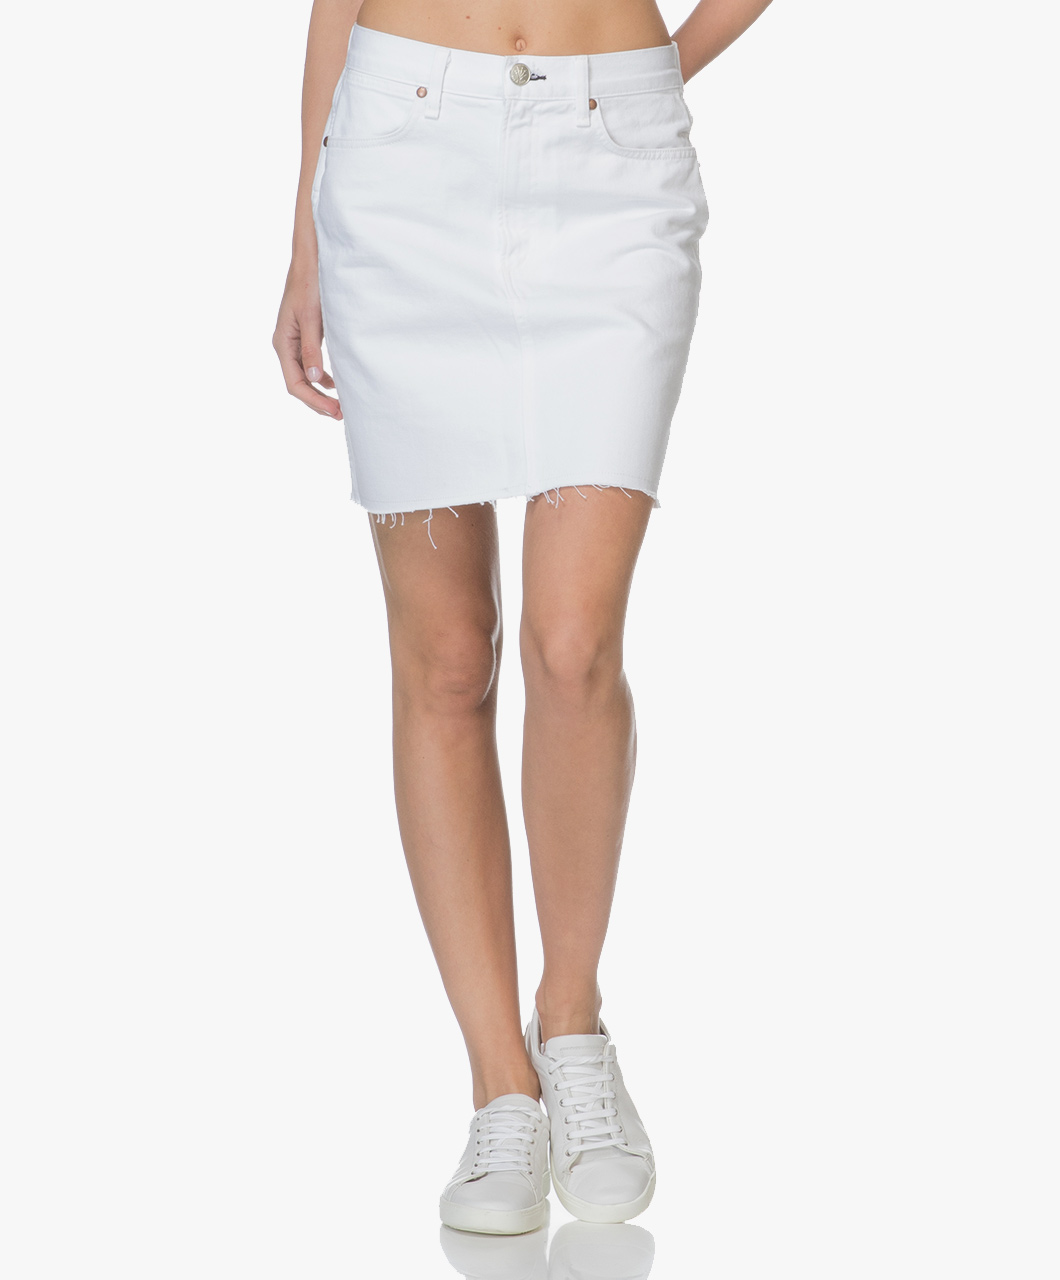 6ba204fb7d Rag & Bone / Jean Moss Denim Skirt - White - moss | w1b15o628wht